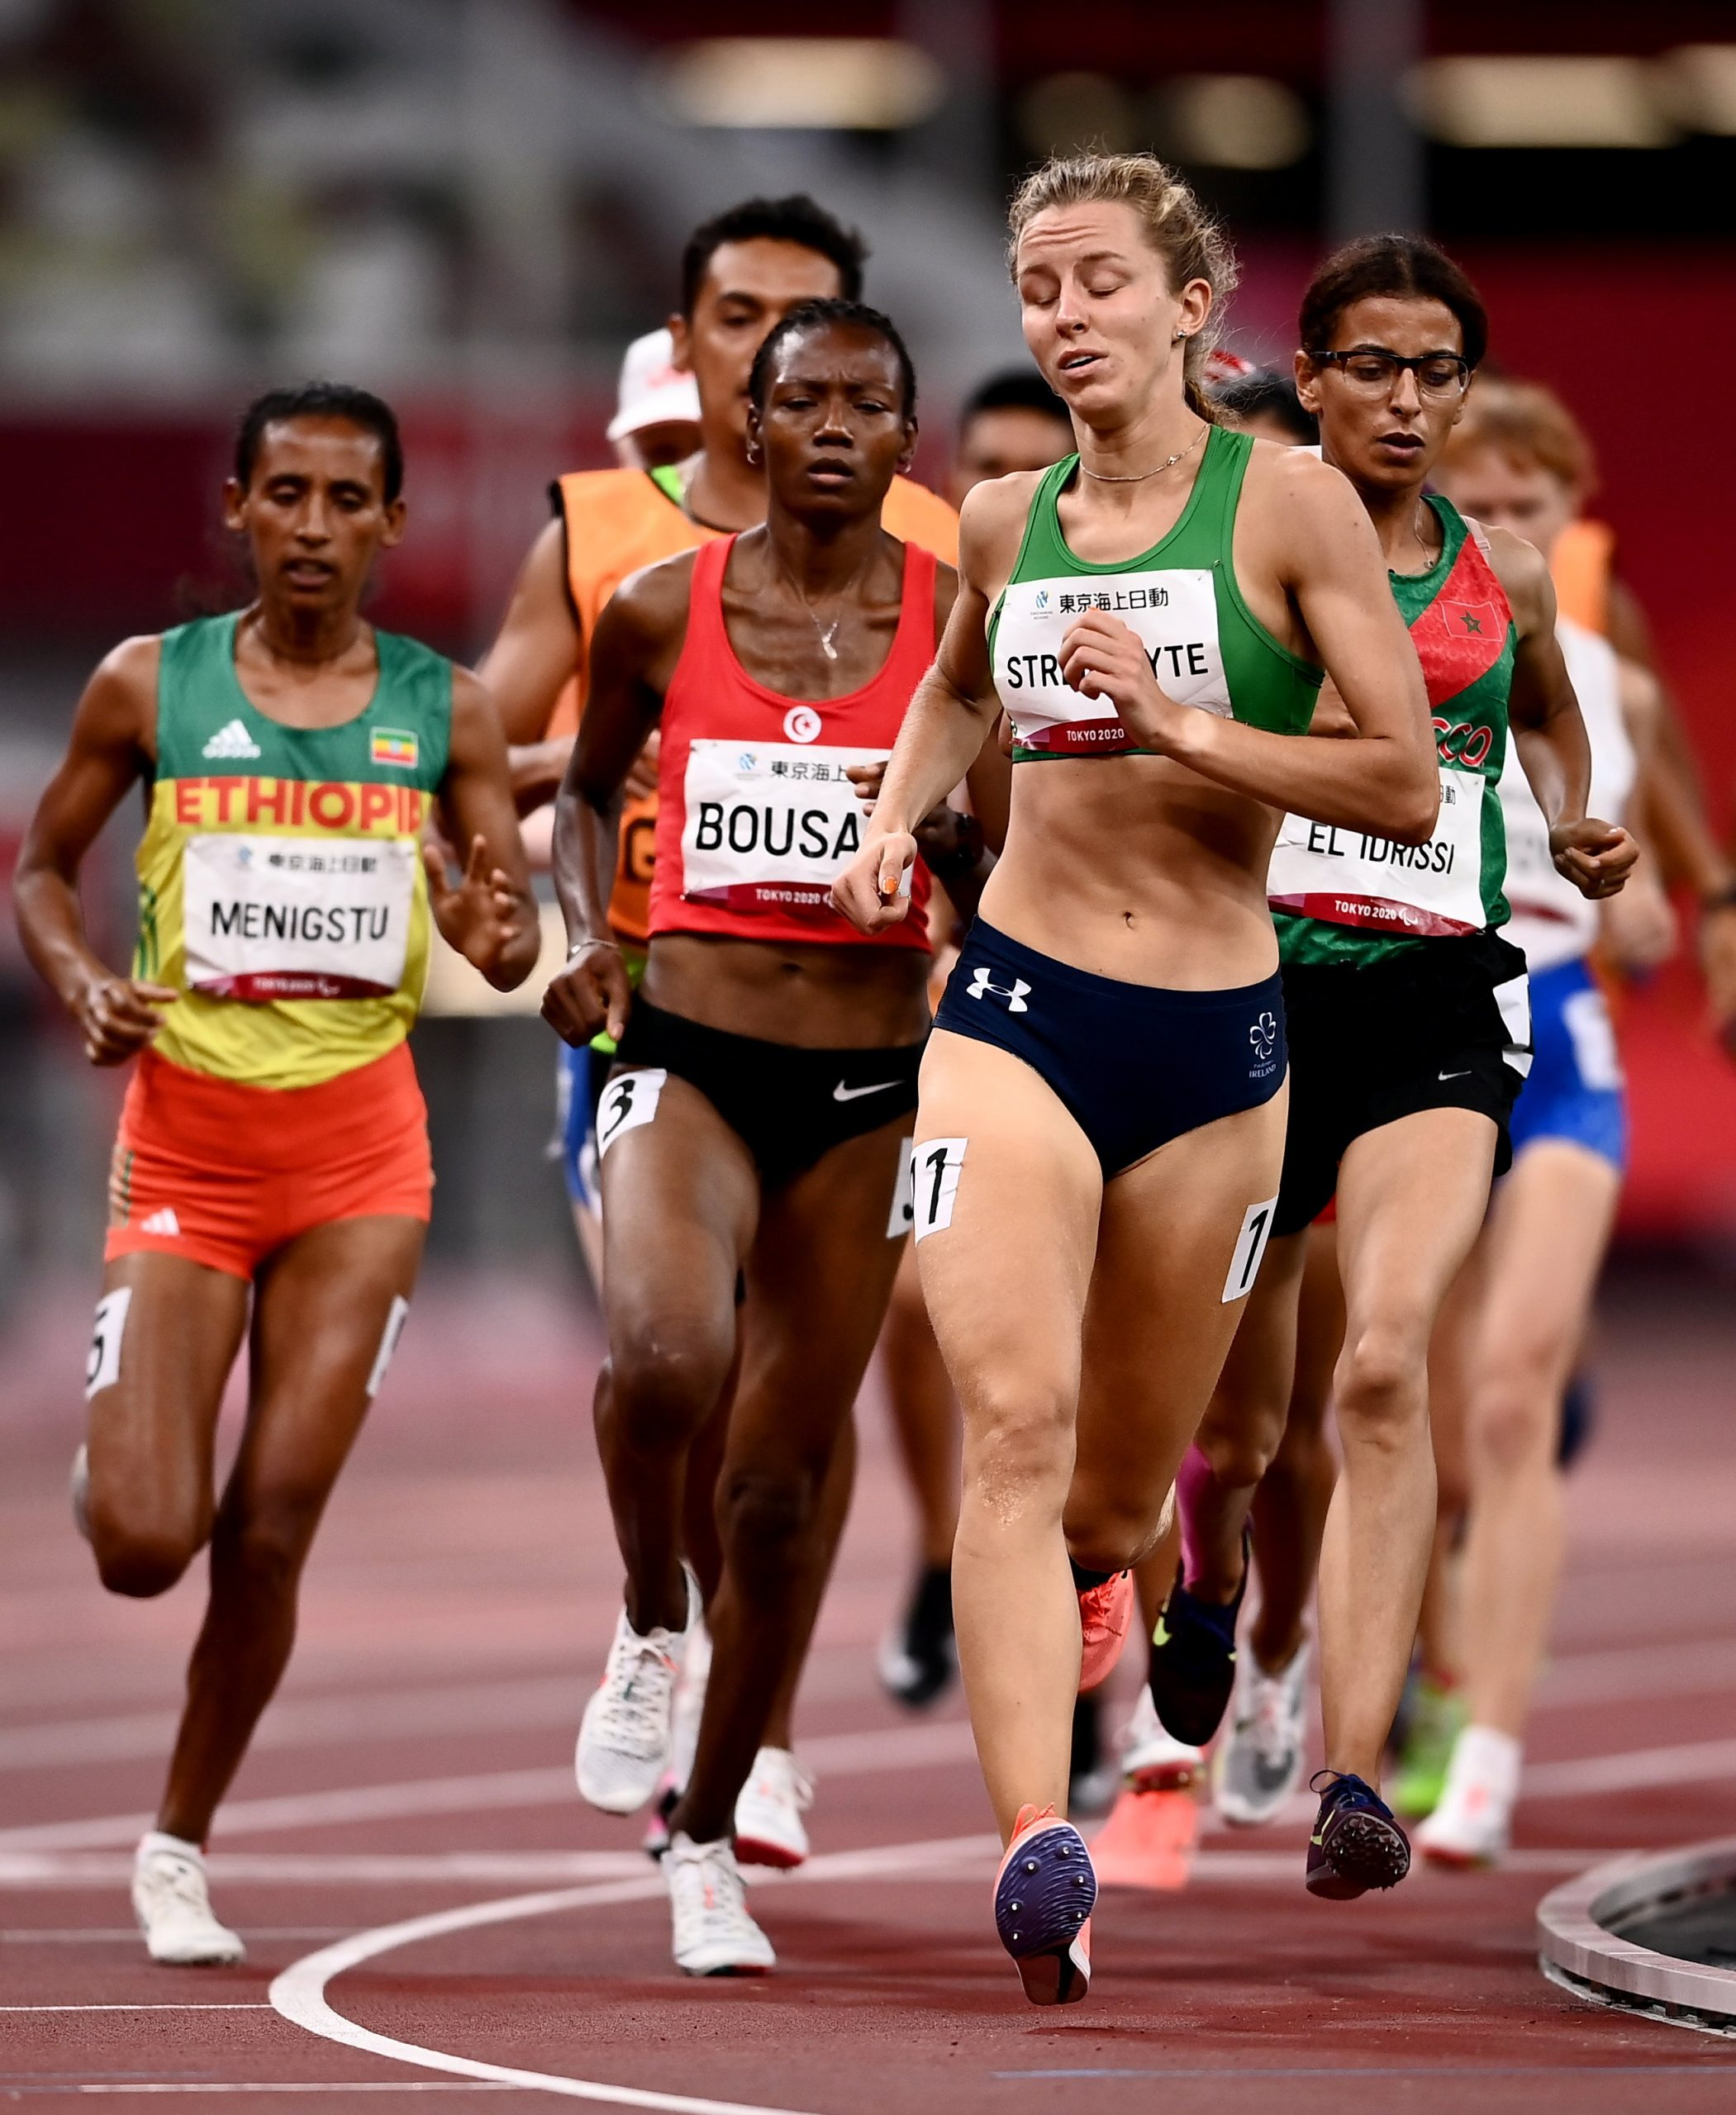 28 August 2021; Greta Streimikyte of Ireland competes in the T13 Women's 1500 metre final at the Olympic Stadium on day four during the Tokyo 2020 Paralympic Games in Tokyo, Japan. Photo by David Fitzgerald/Sportsfile *** NO REPRODUCTION FEE ***